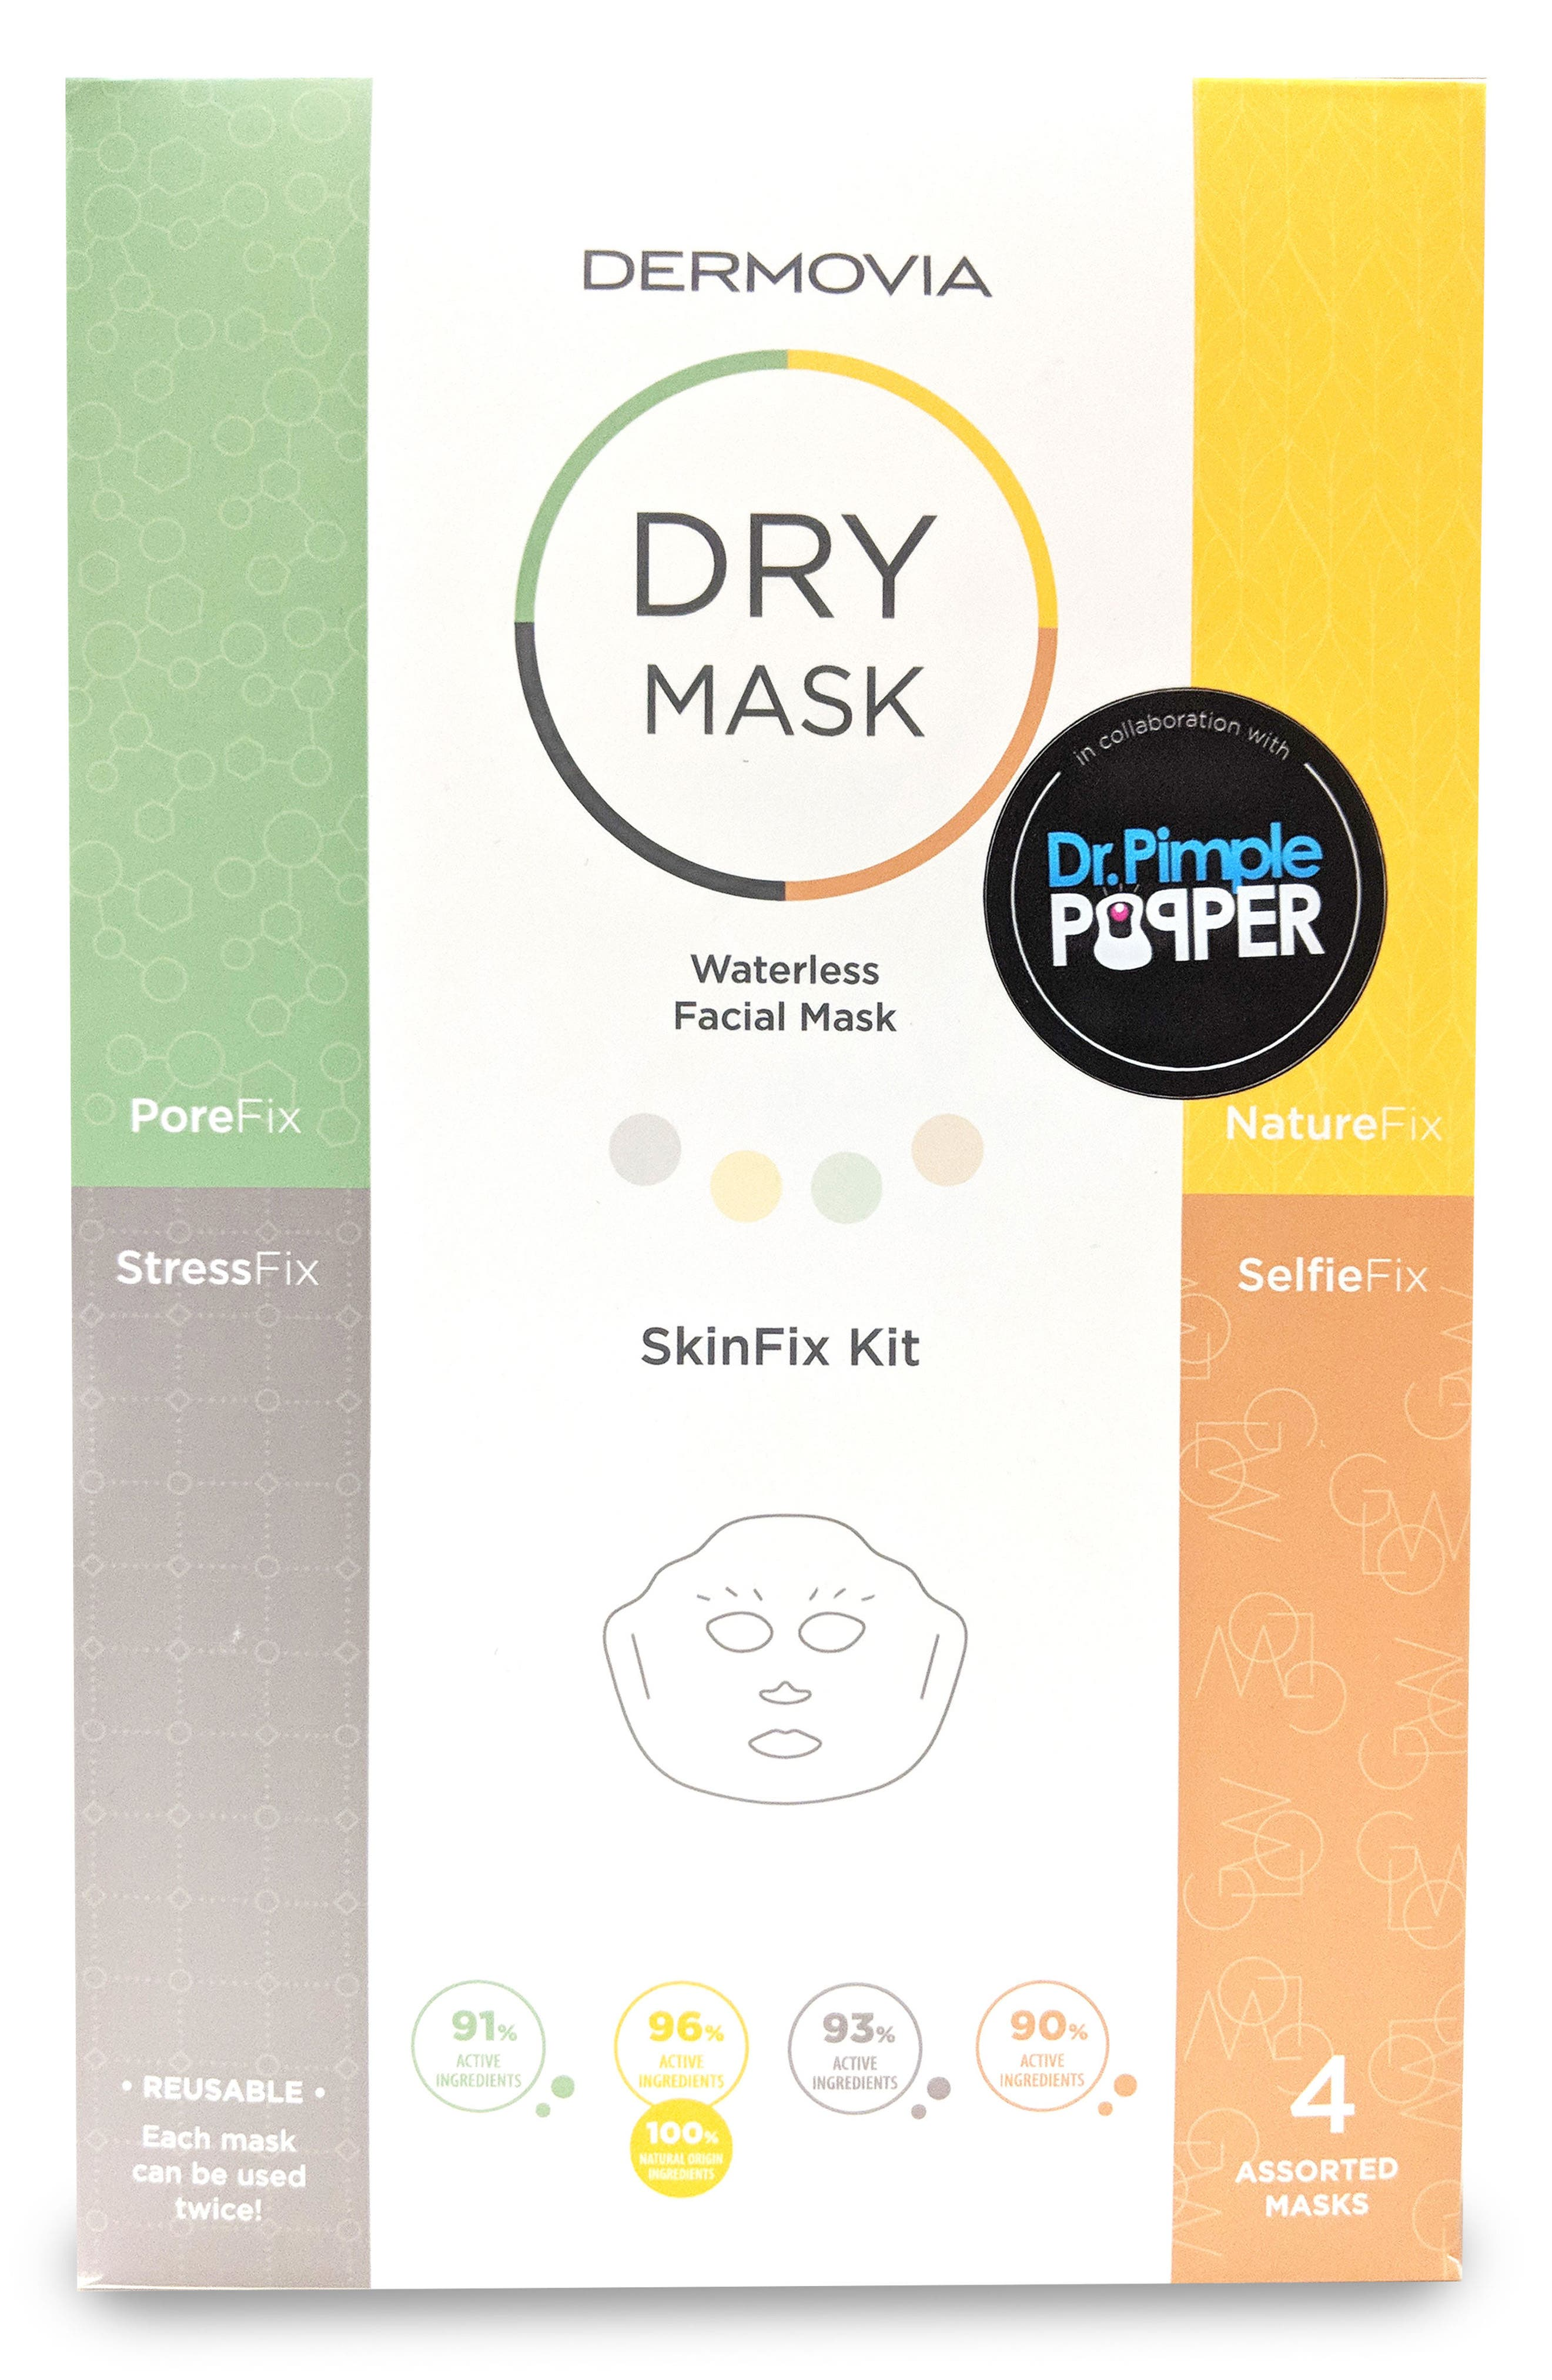 x Dr. Pimple Popper DRY Mask Waterless Facial Mask SkinFix Kit,                         Main,                         color,